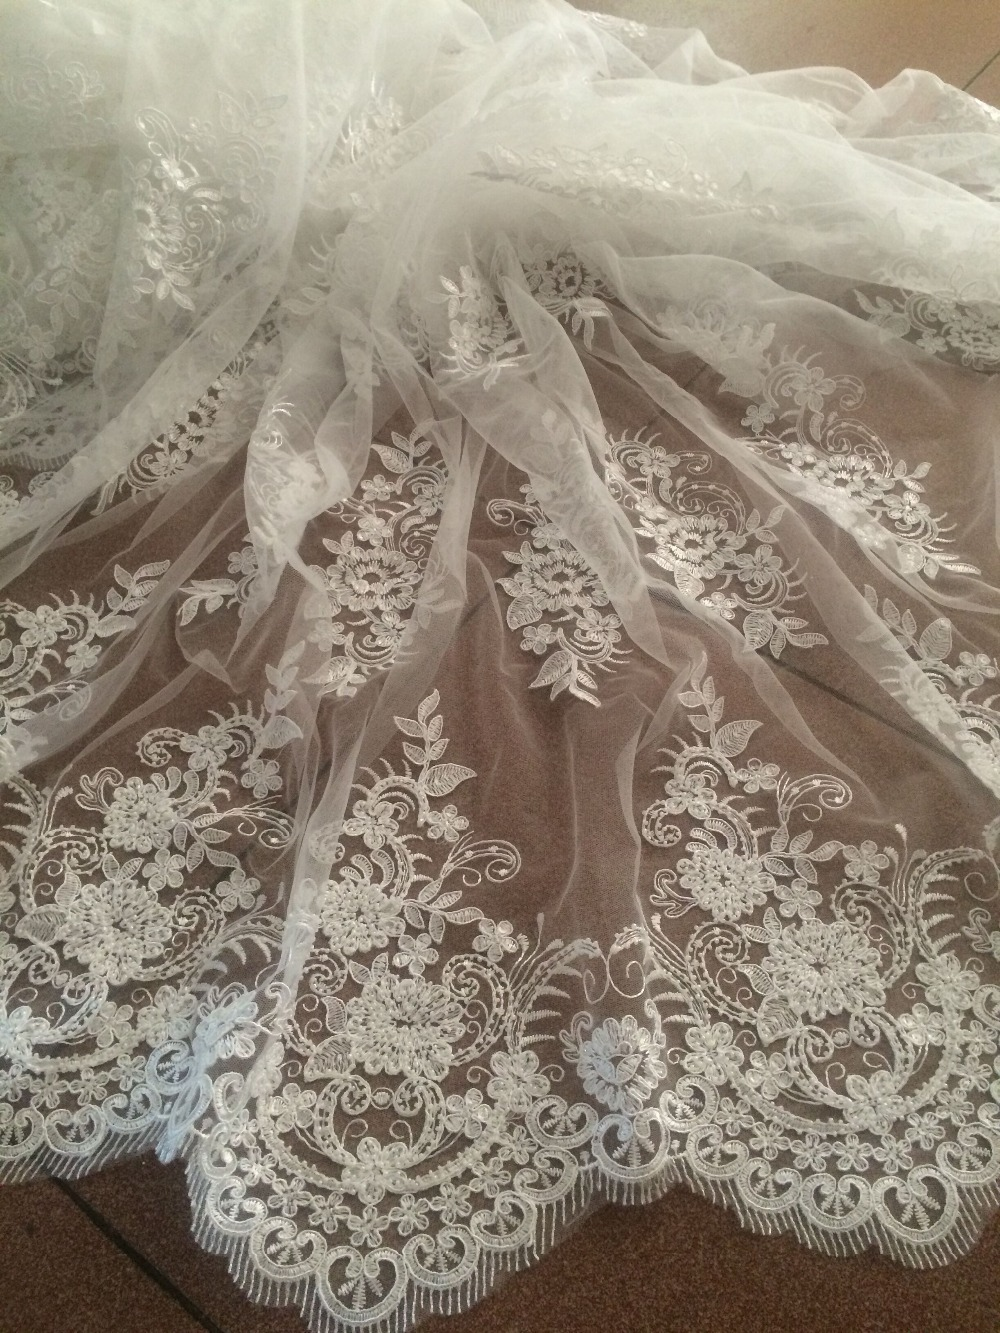 fashionable embroidered lace fabric David 42926 beaded tulle net fabric french lace fabric with high quality